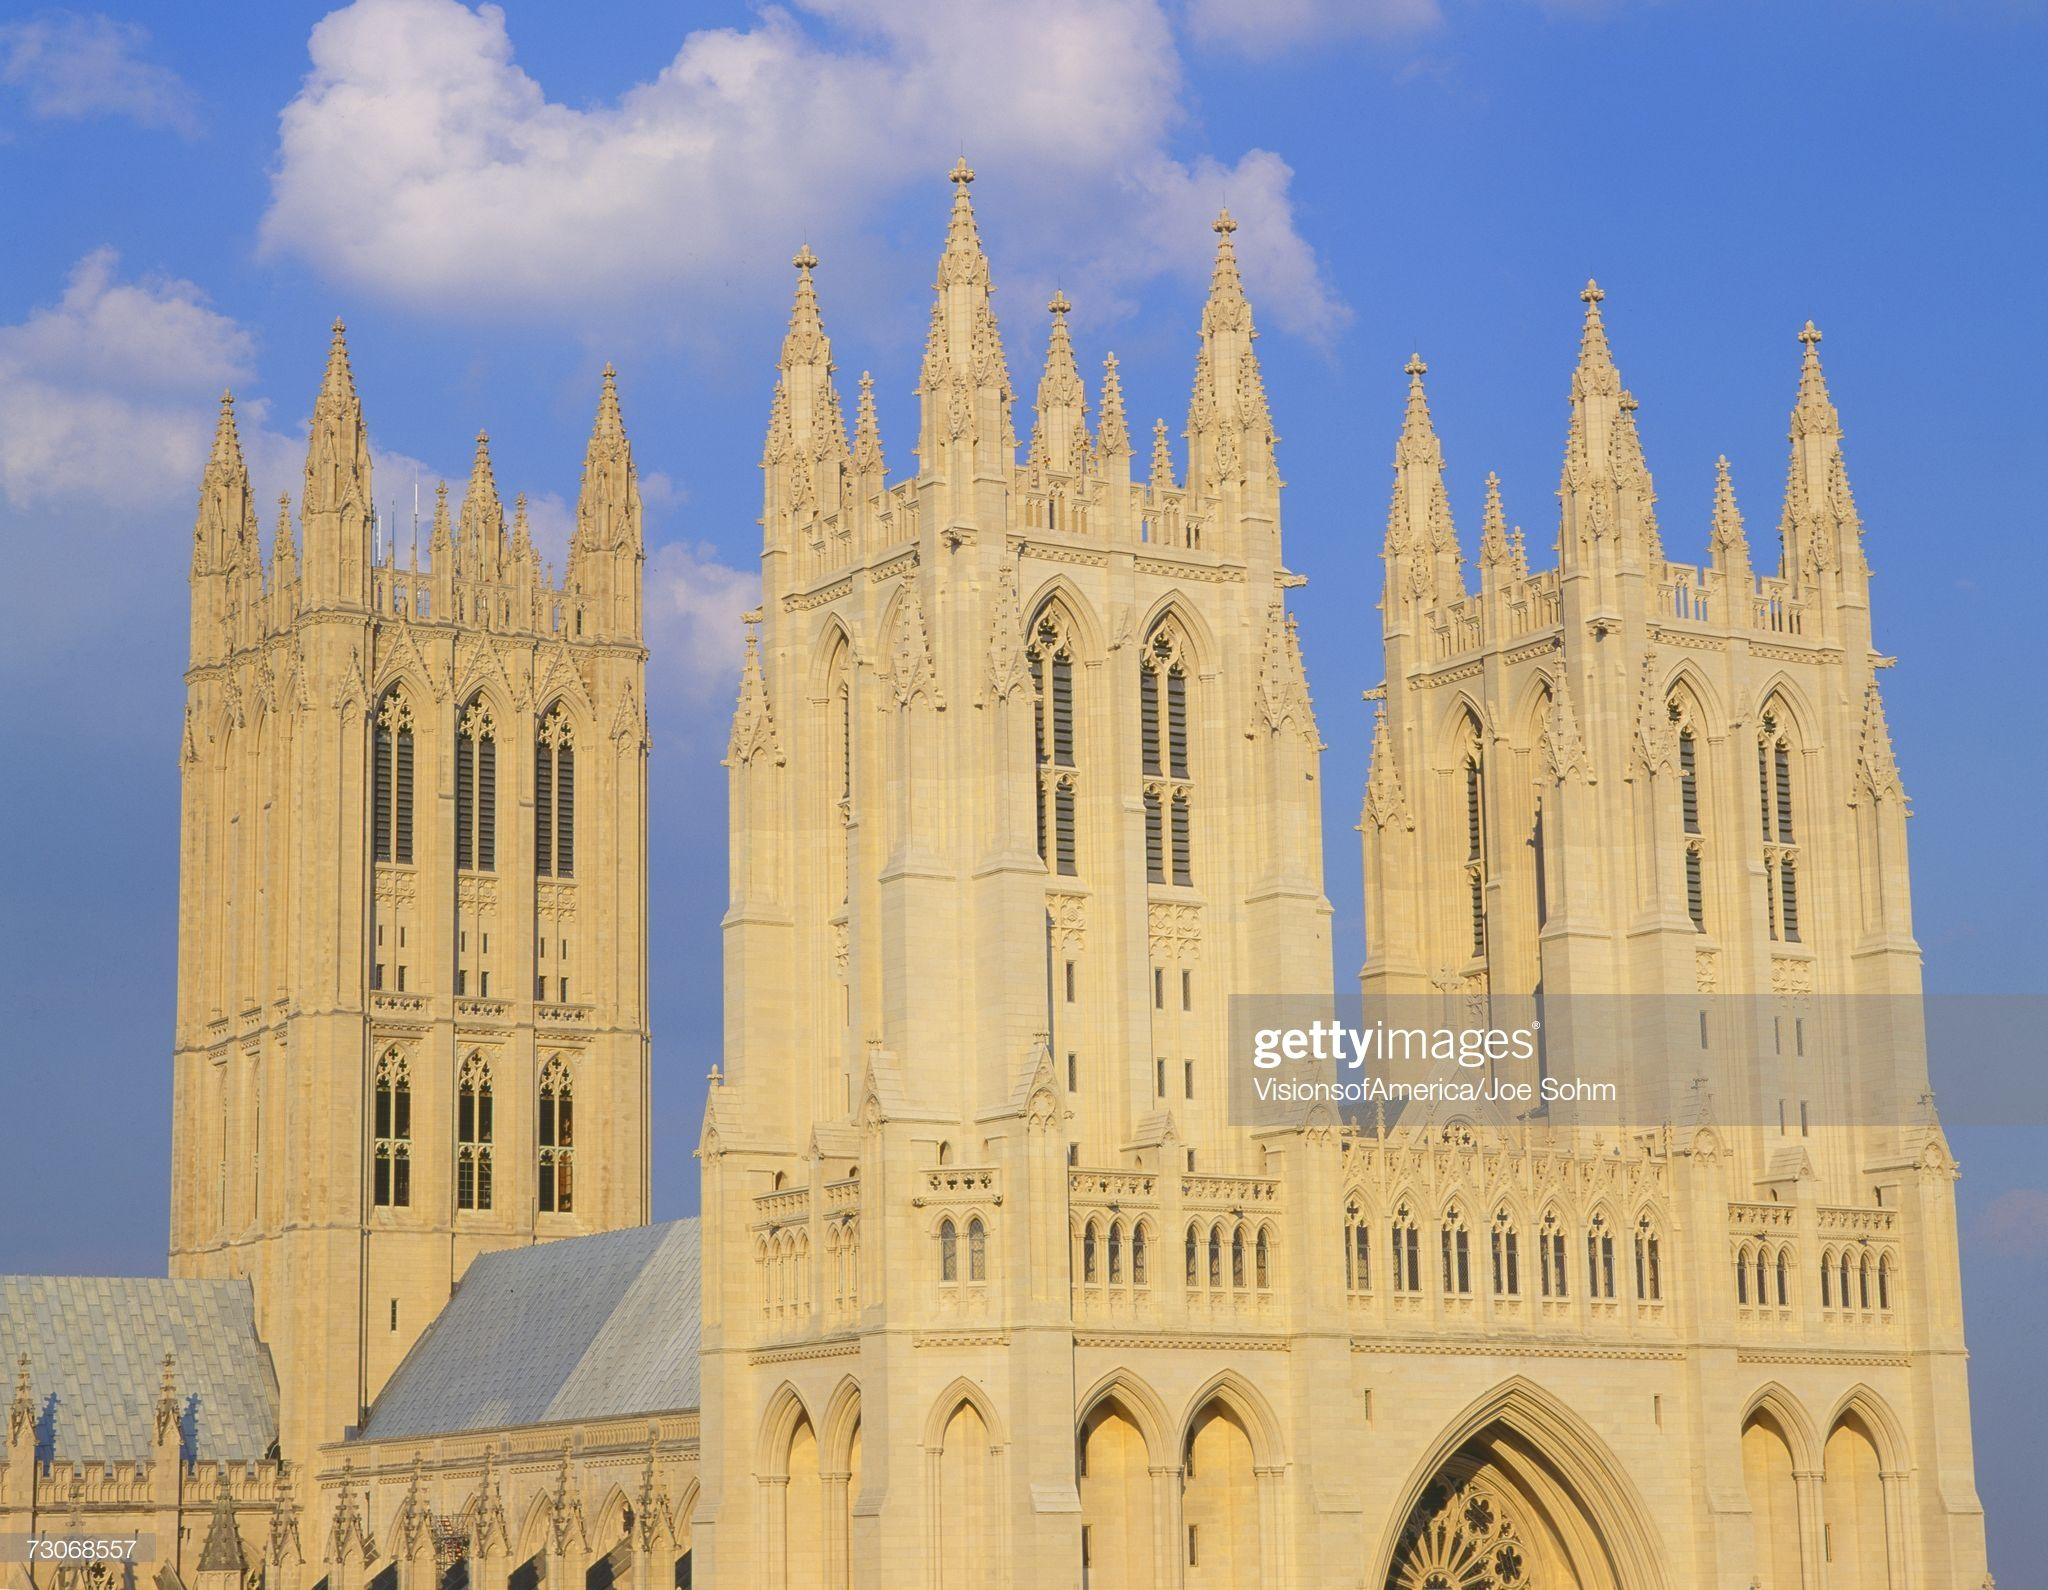 Washington National Cathedral St Peter And St Paul